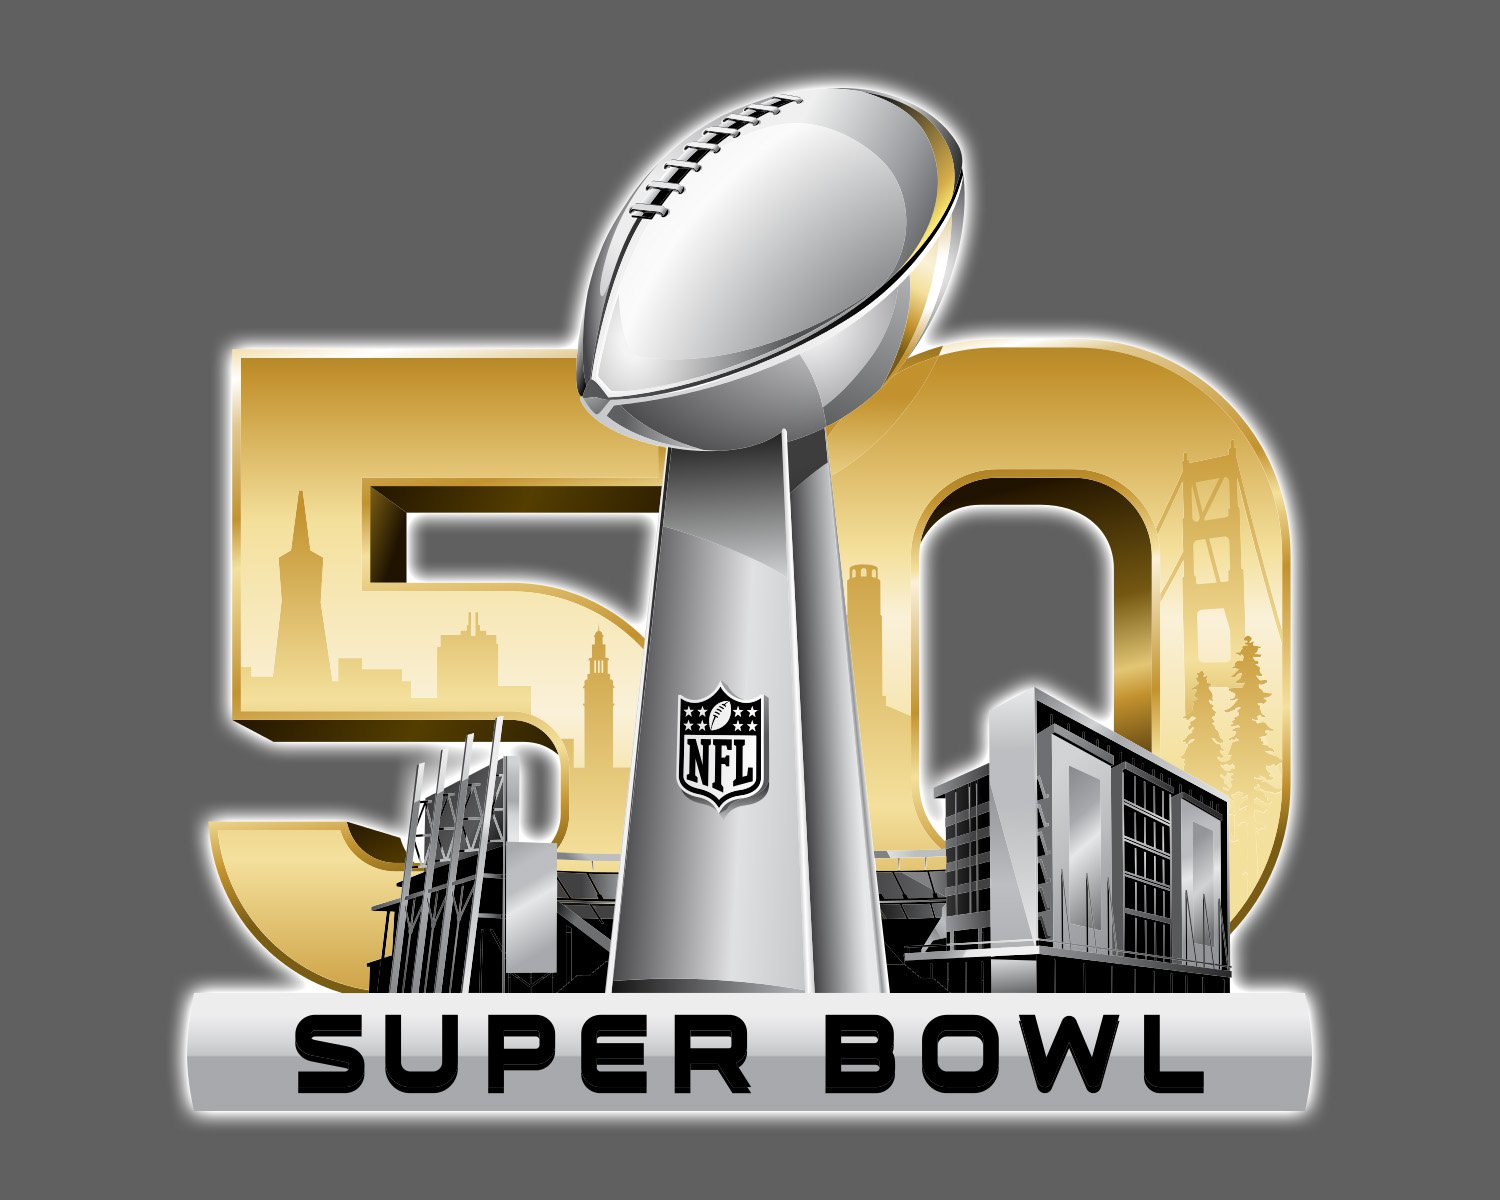 Super Bowl 50 Logo Pictures - 12.000 vector logos